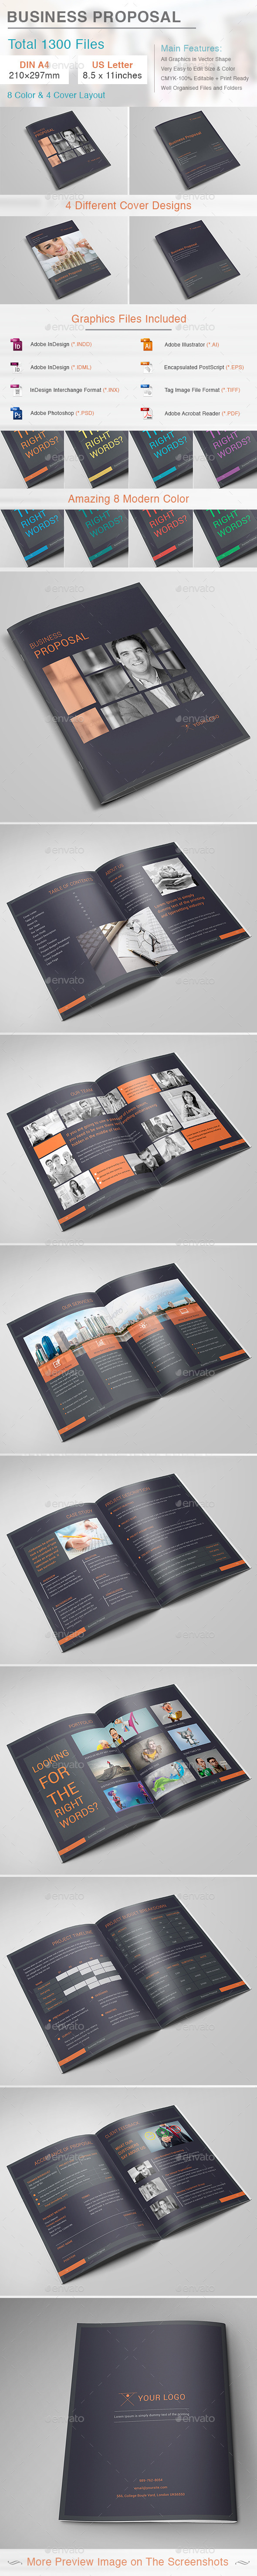 GraphicRiver Business Proposal 11647861